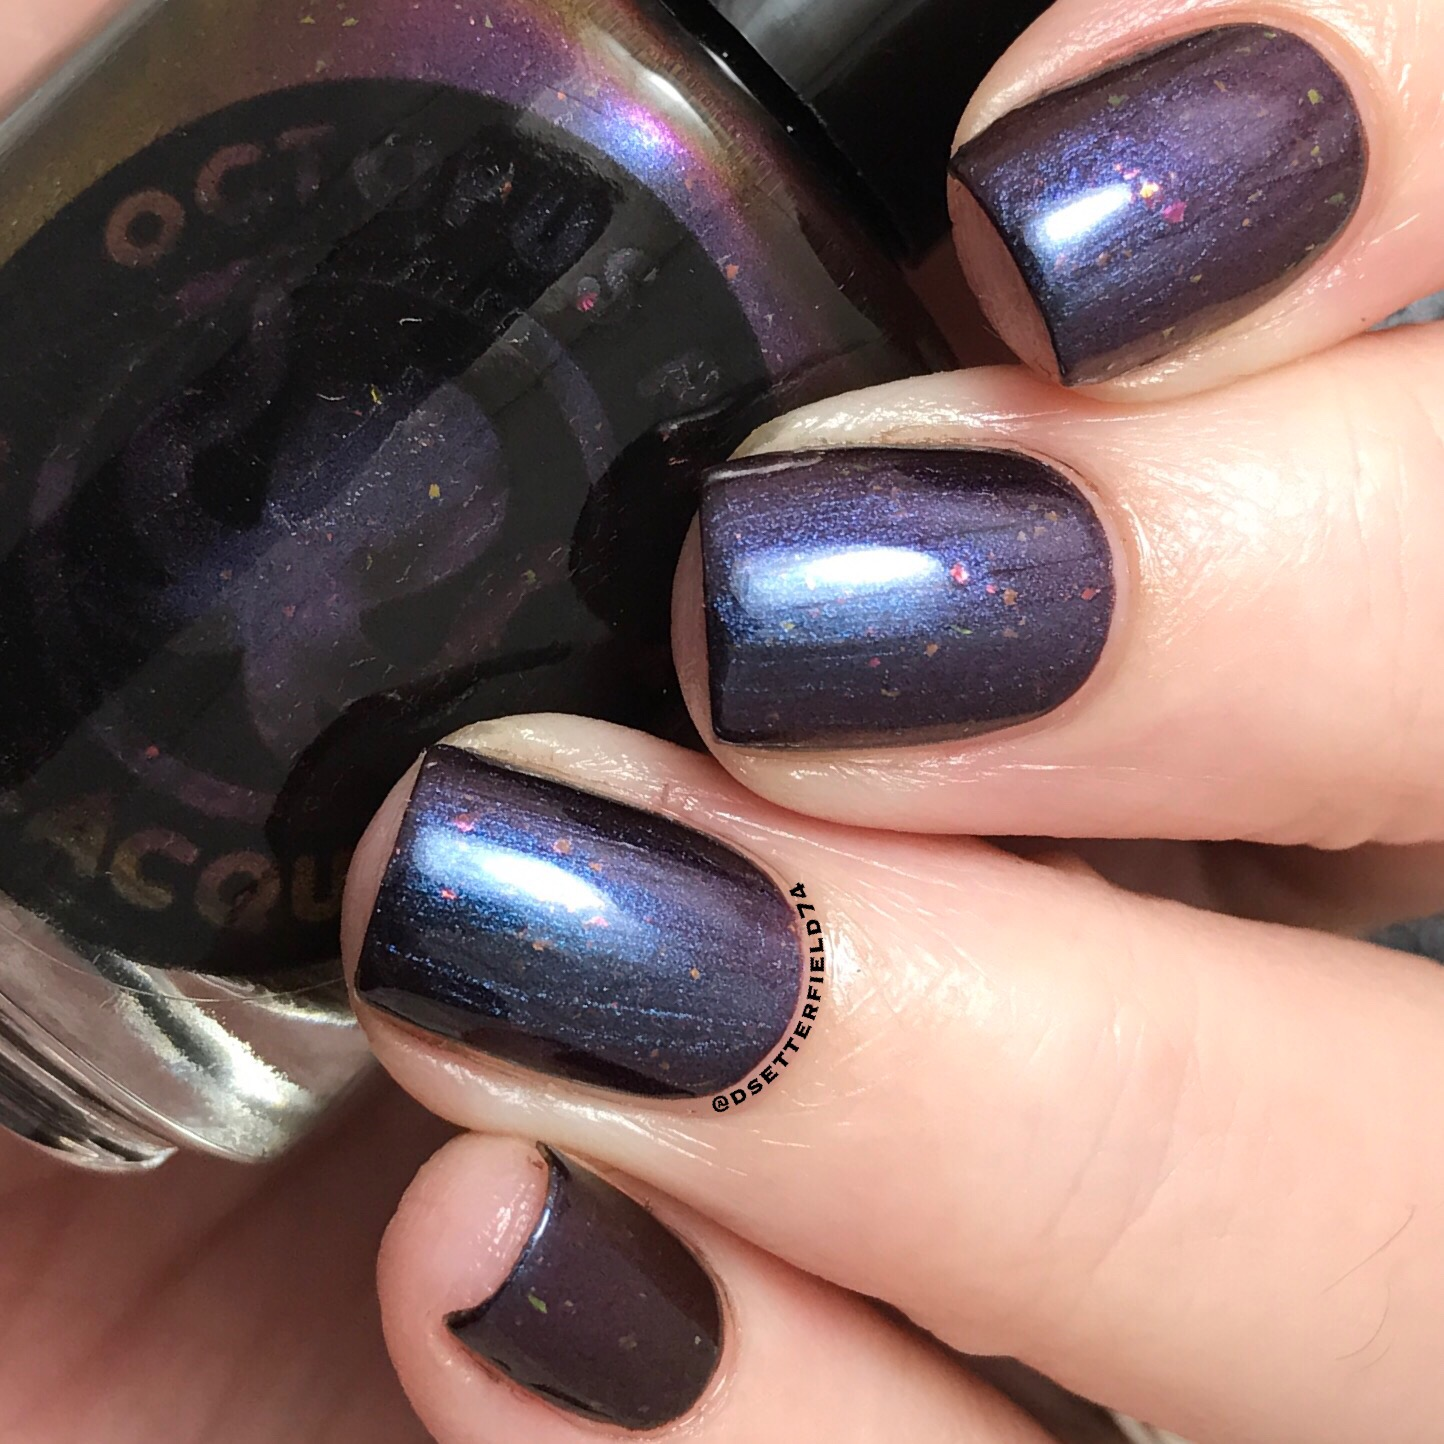 Octopus Party Nail Lacquer: Game of Thrones Trio | Snacks On Rotation